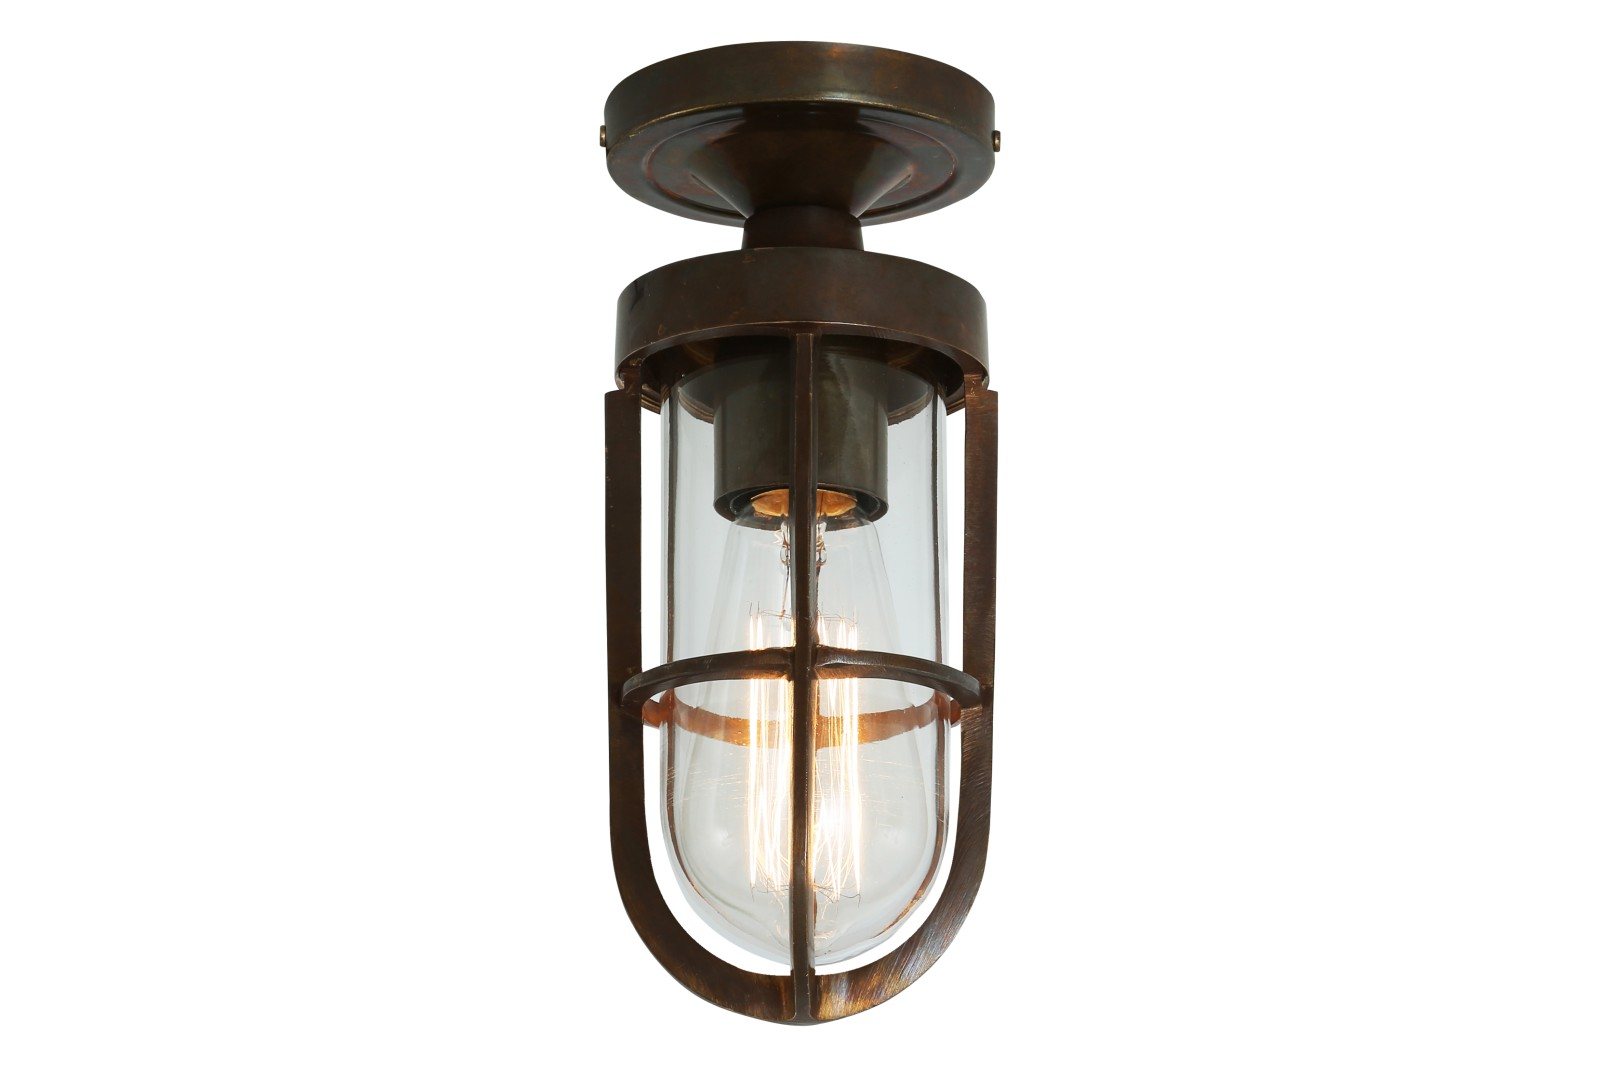 Oregon A Ceiling Light Antique Brass, Clear Glass